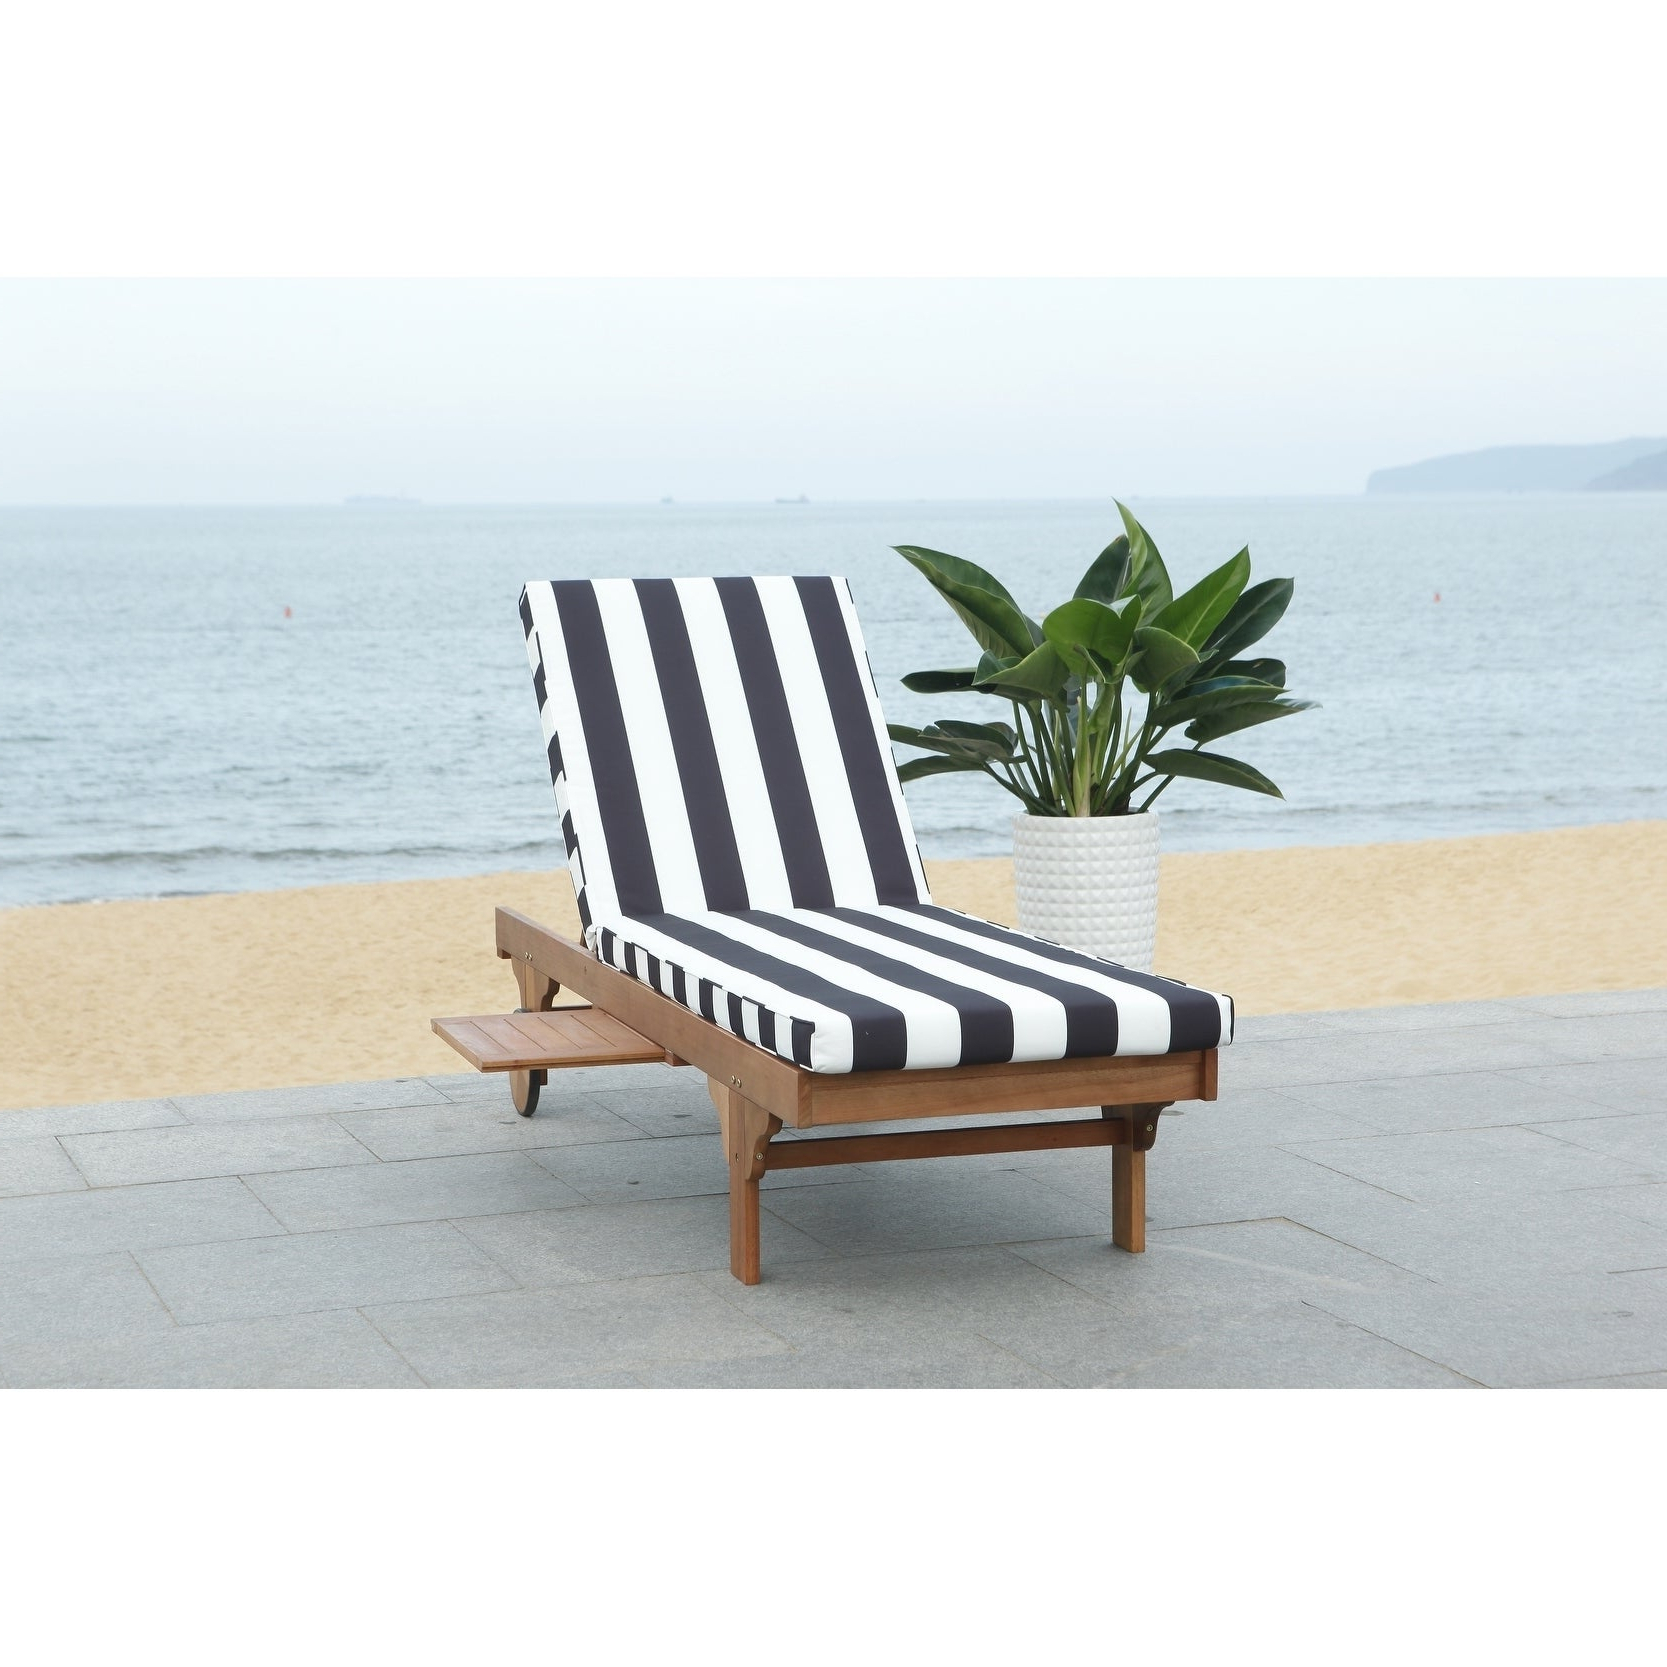 "Safavieh Outdoor Living Newport Ash Black/ White Stripe Cart Wheel Adjustable Chaise Lounge Chair – 27.6"" X 78.7"" X (View 2 of 25)"